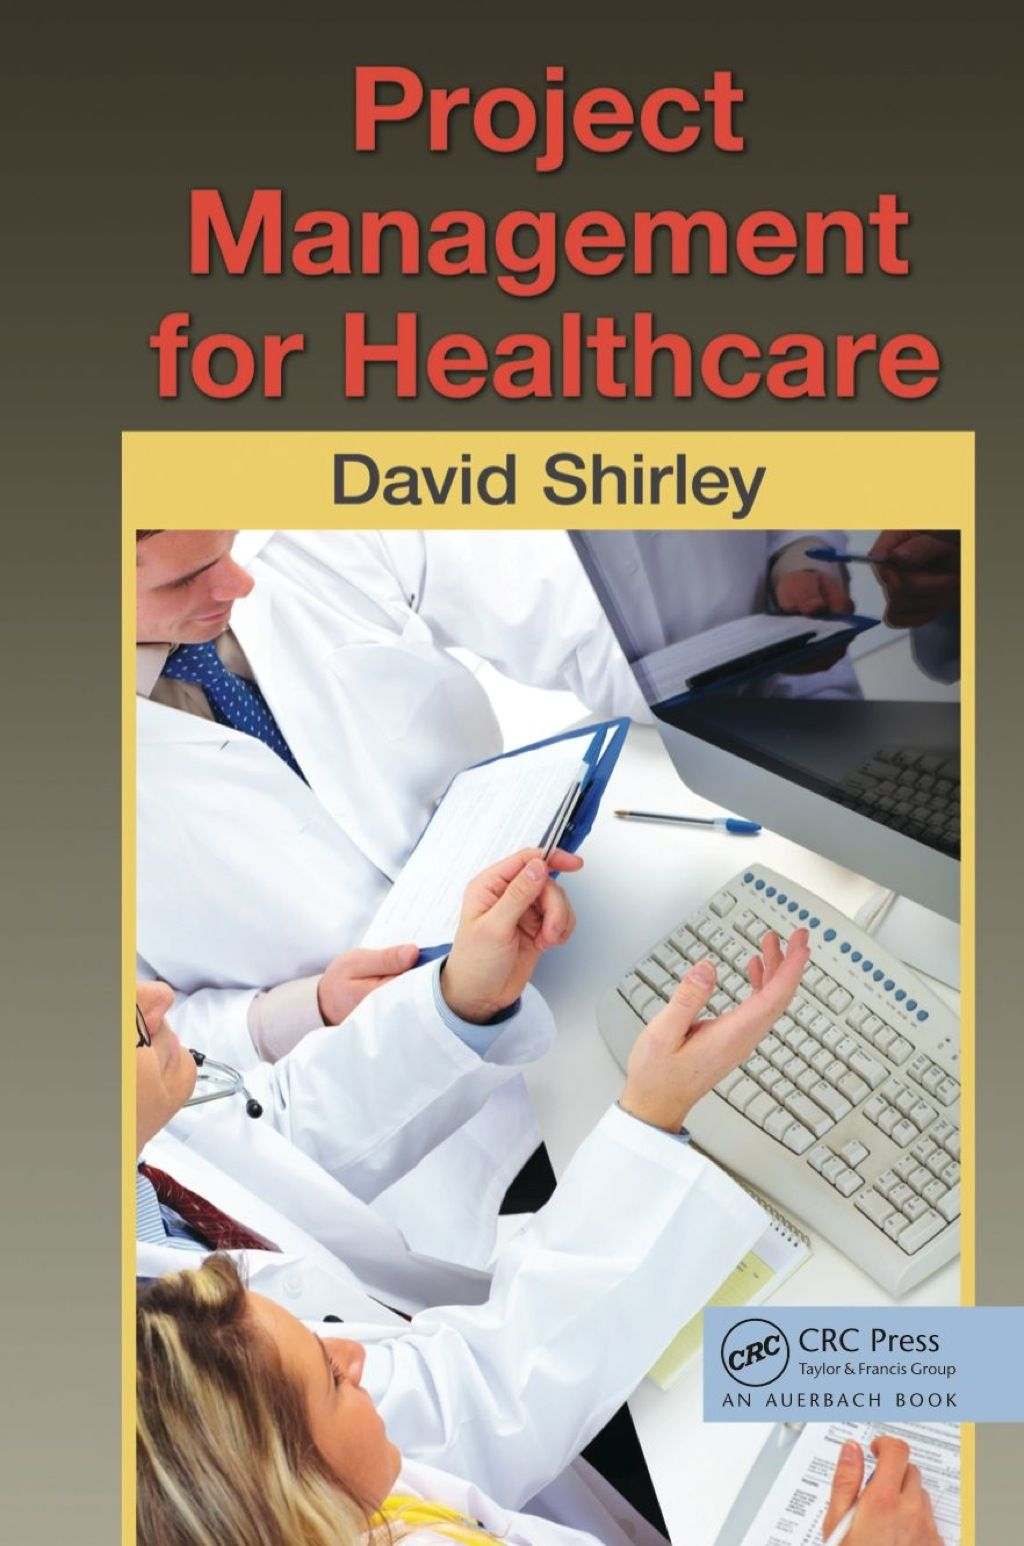 Project Management for Healthcare (eBook Rental) Project